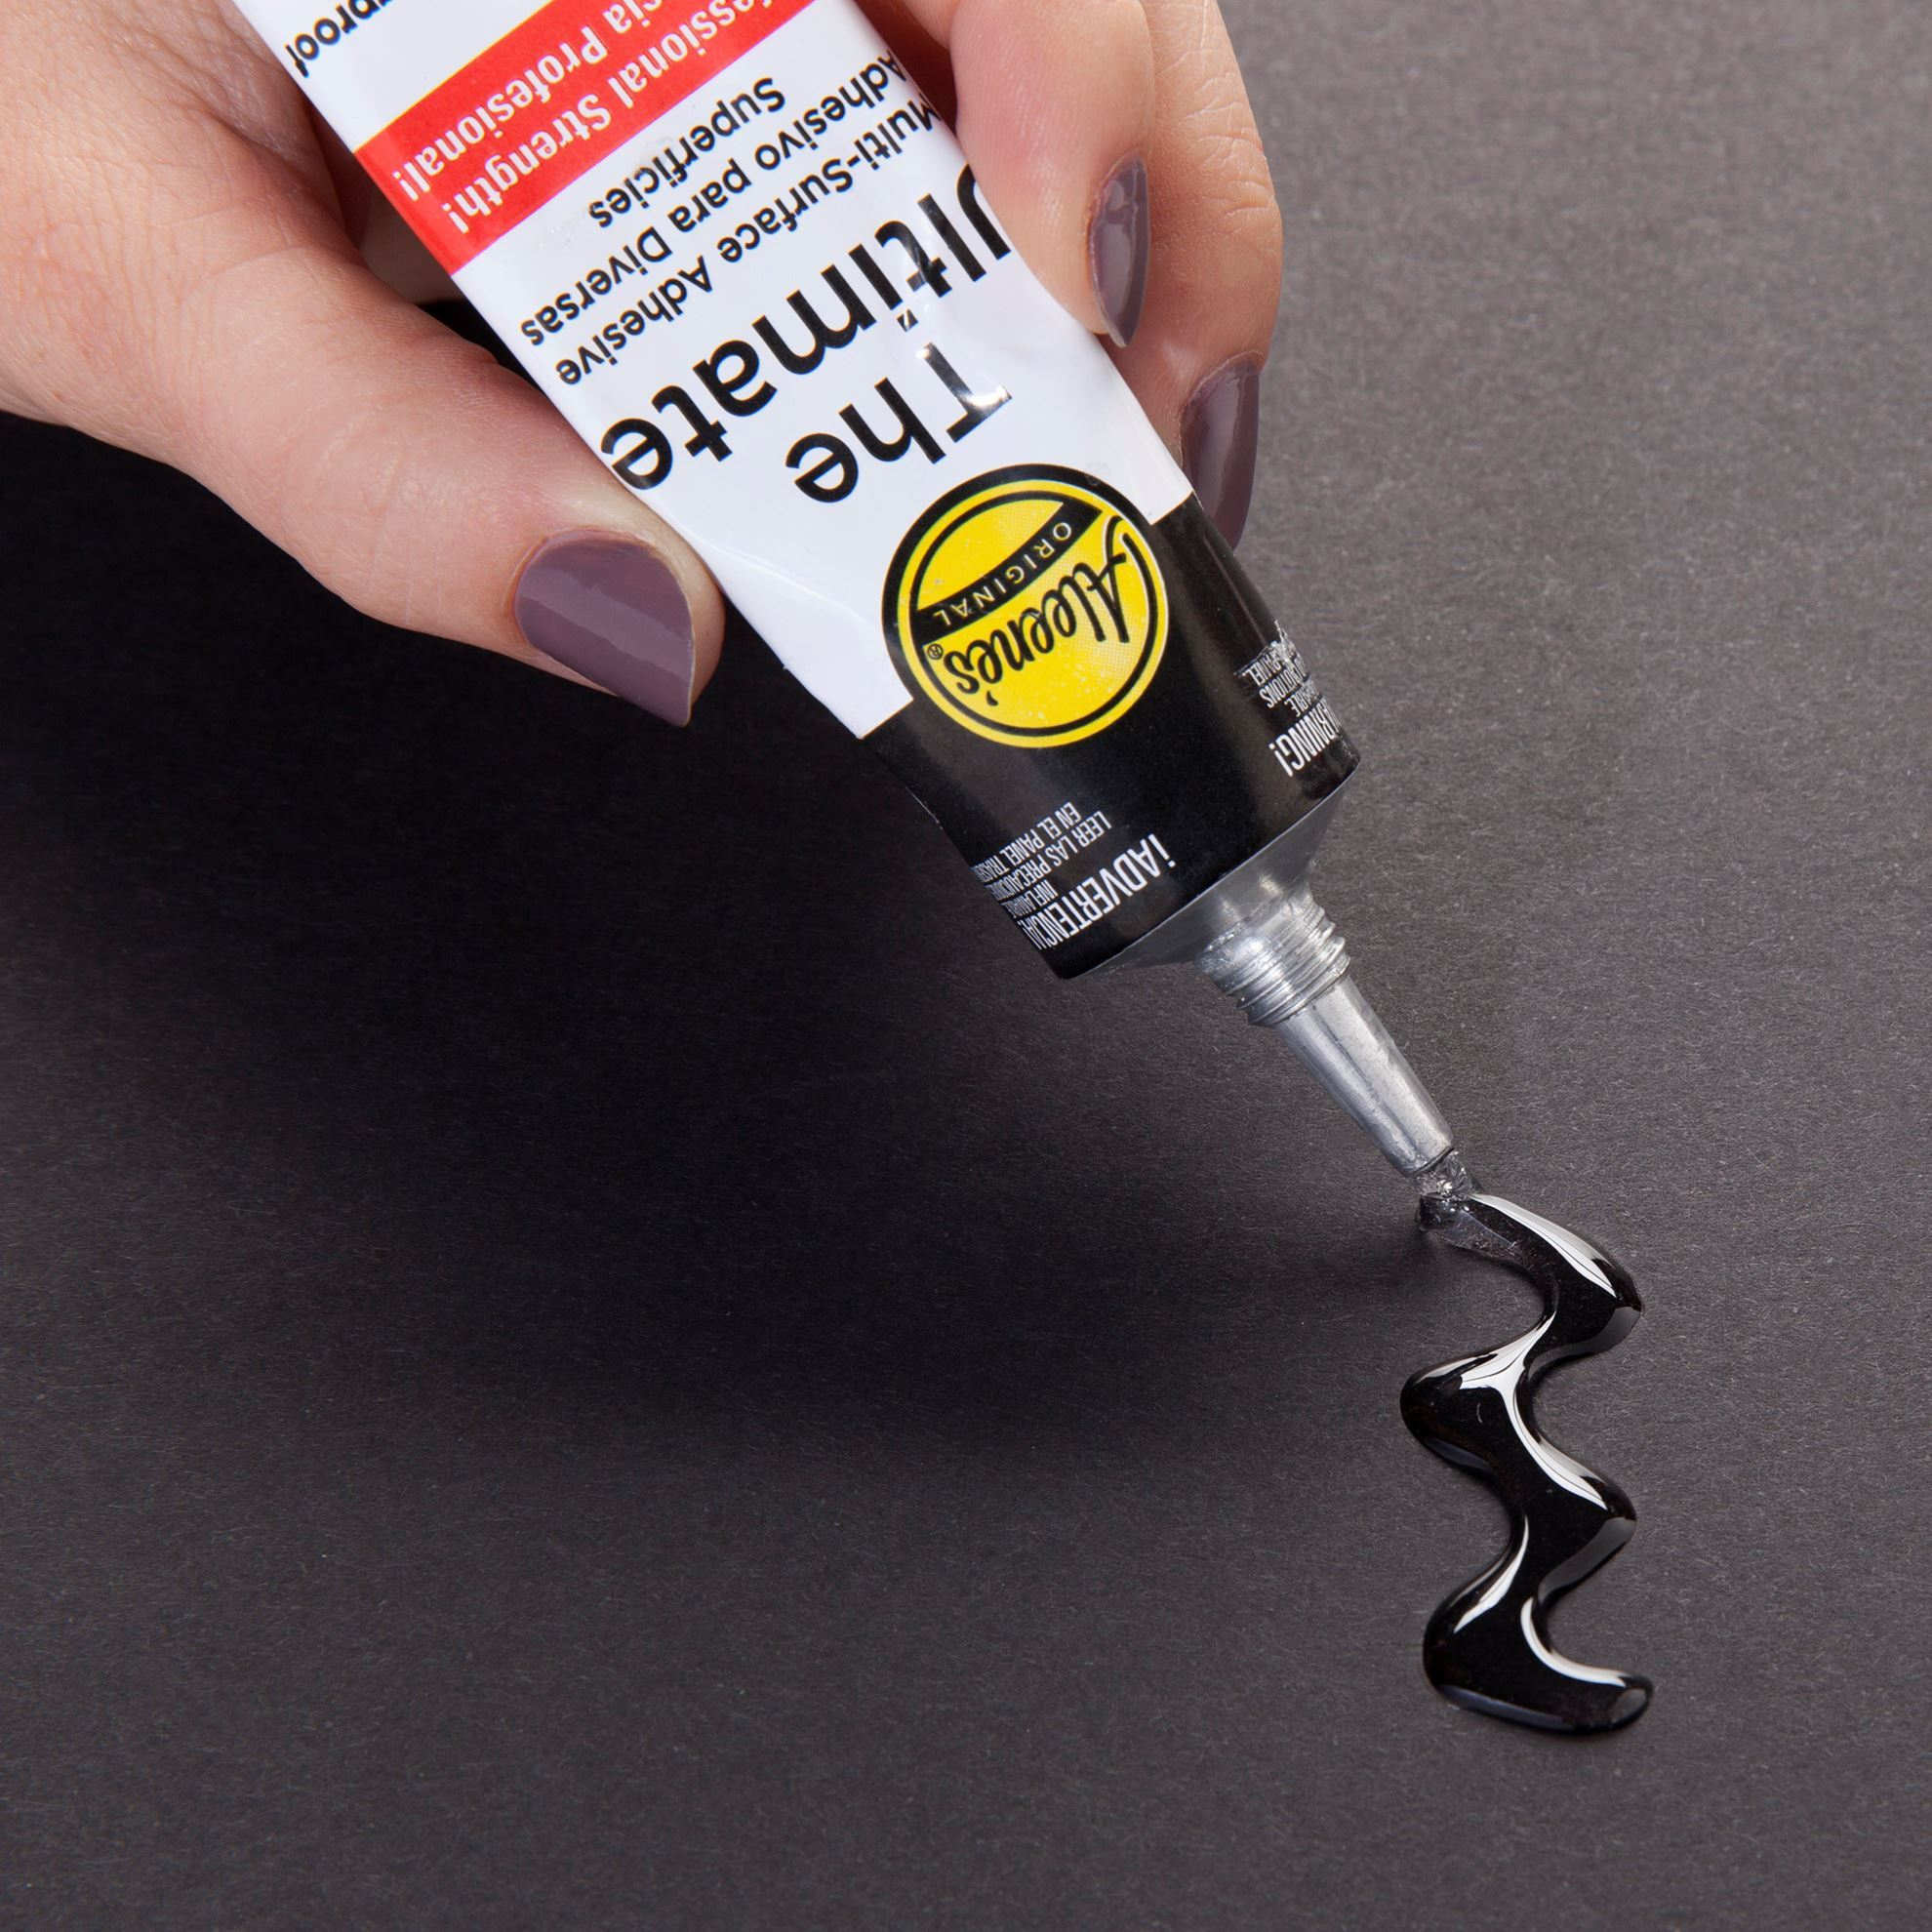 The Ultimate Multi-Surface Adhesive